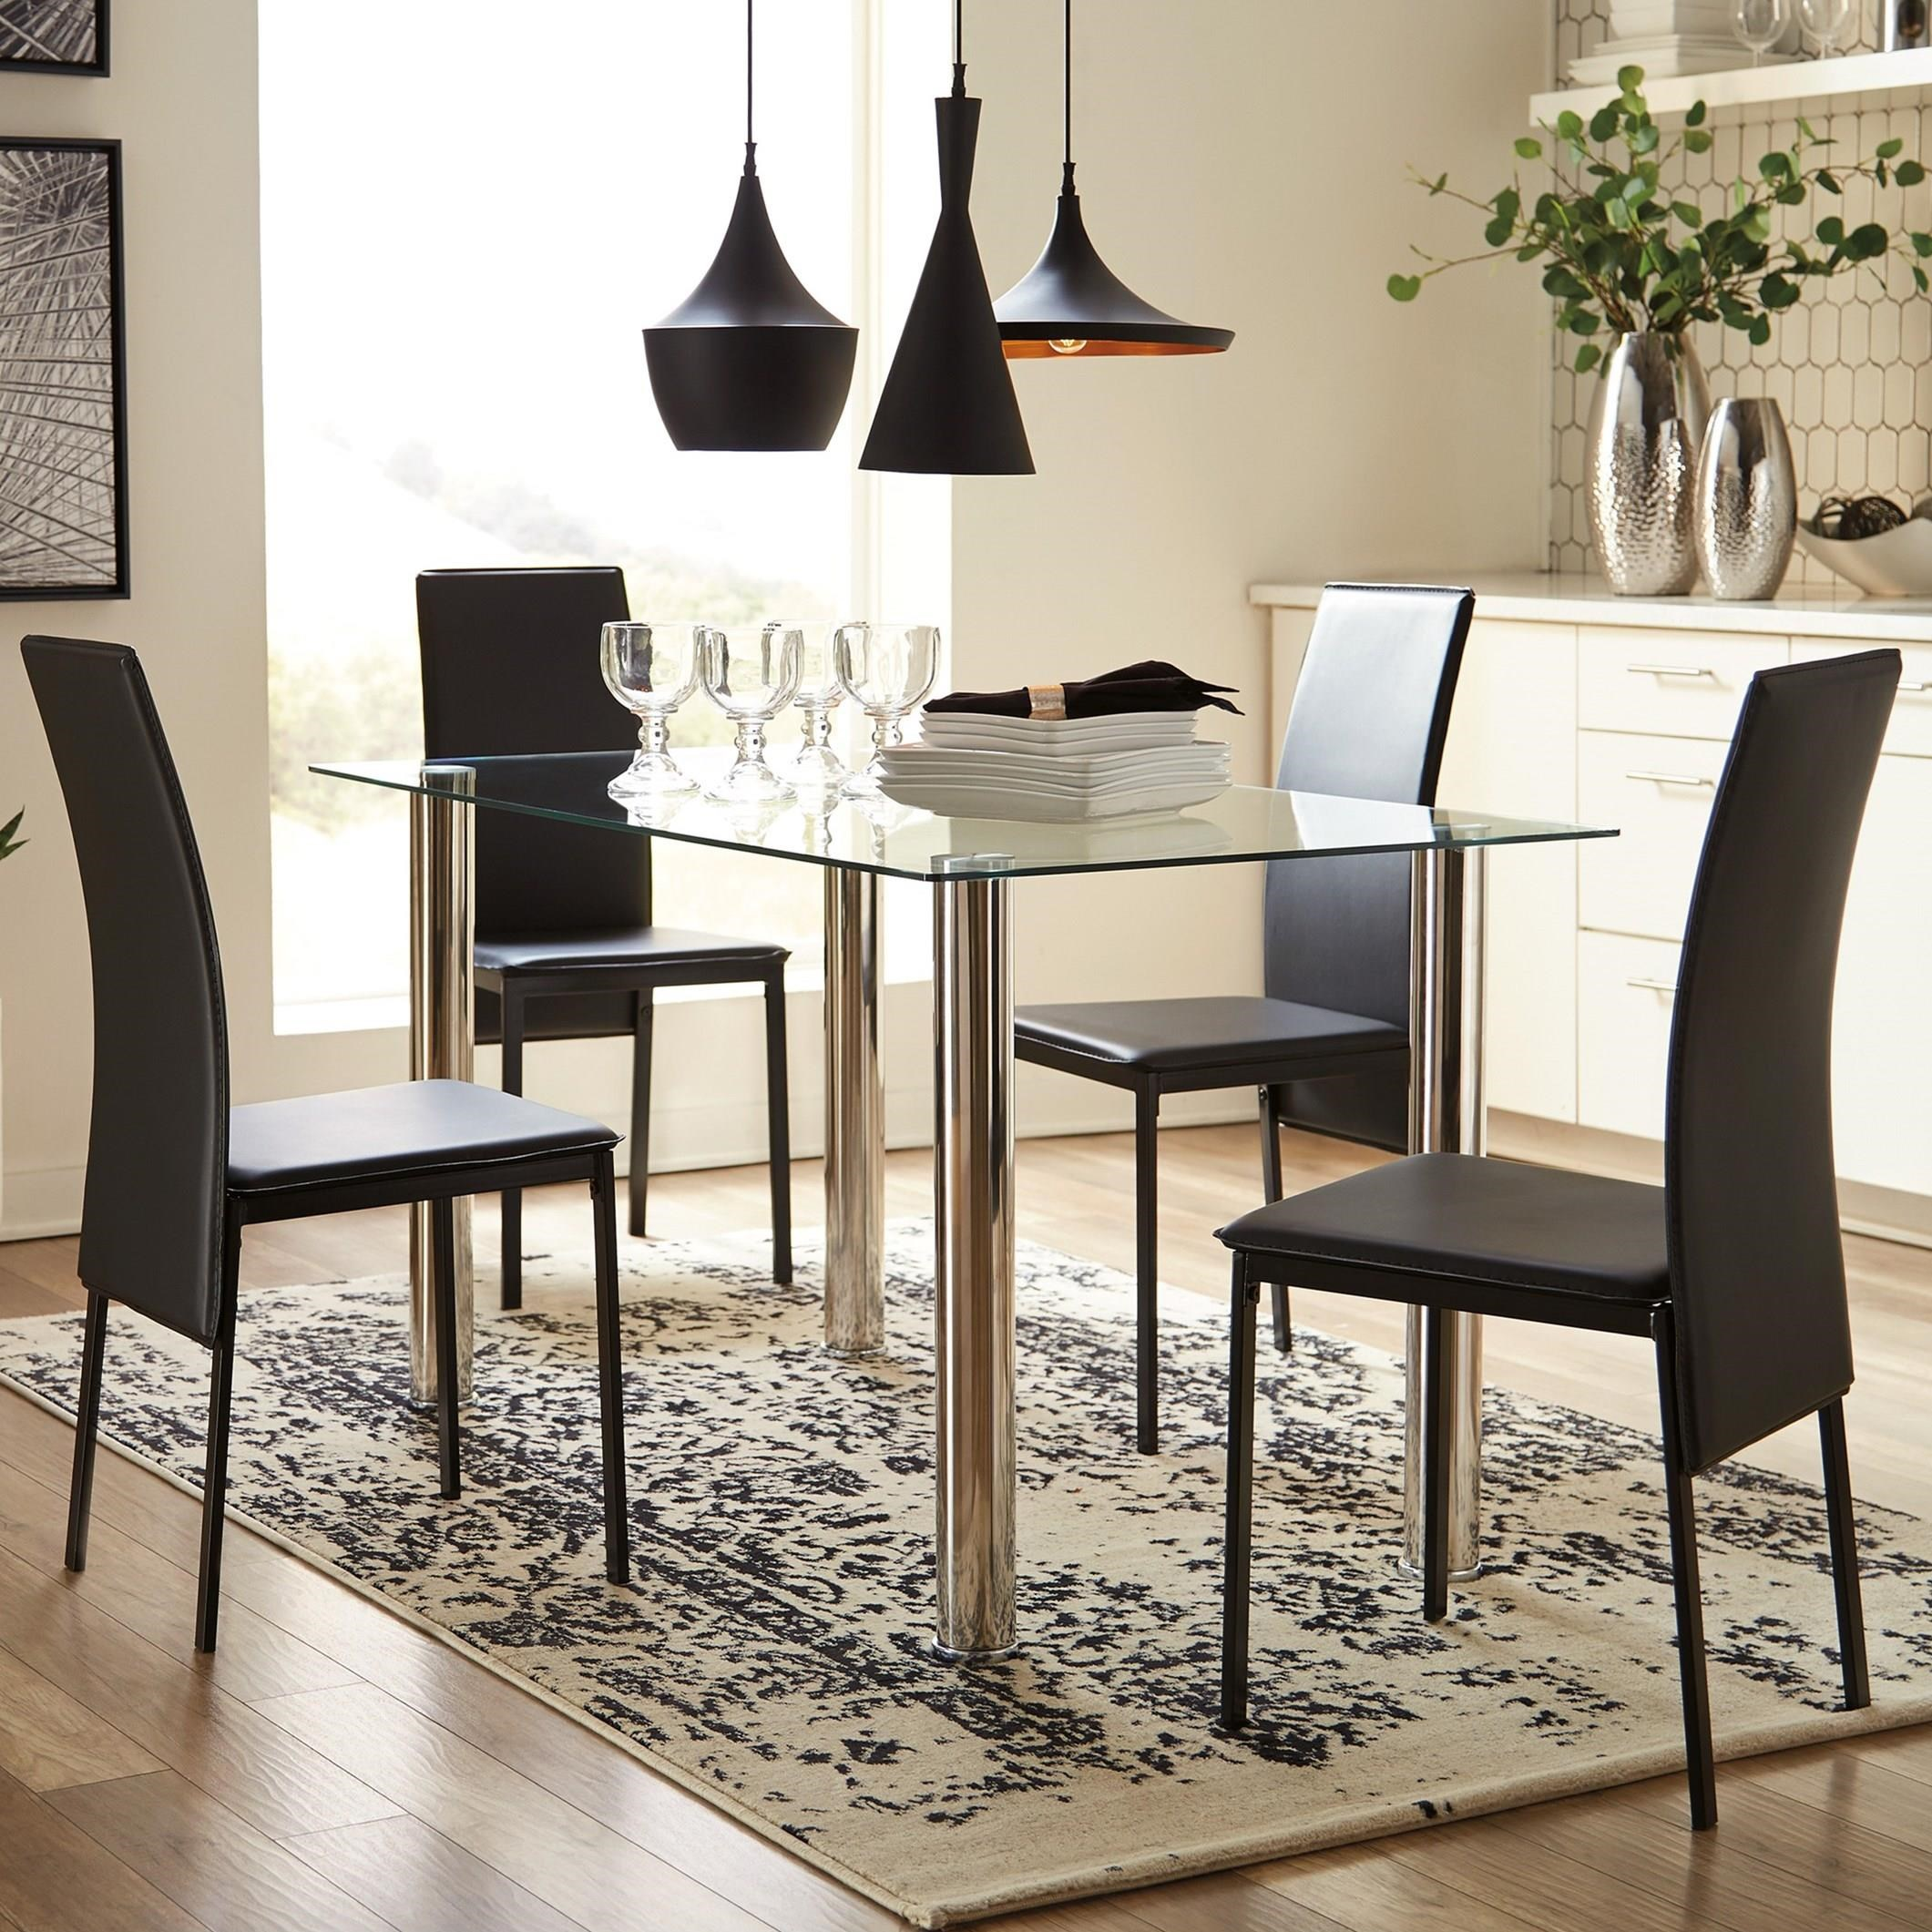 Contemporary Five Piece Chair and Table Set with Glass Top